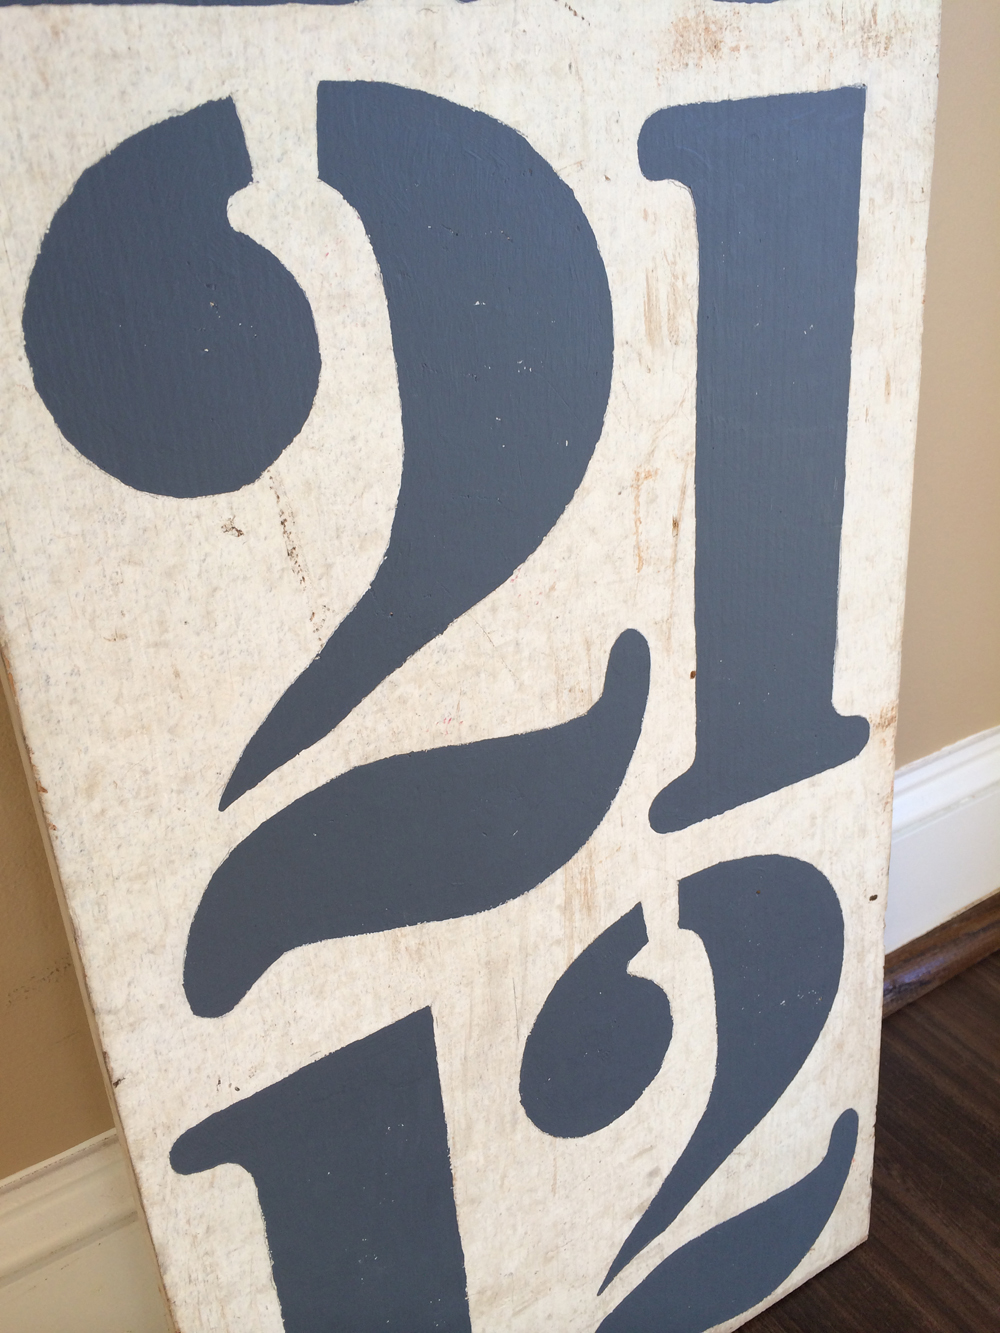 Atelier_Paint and Numbers 2